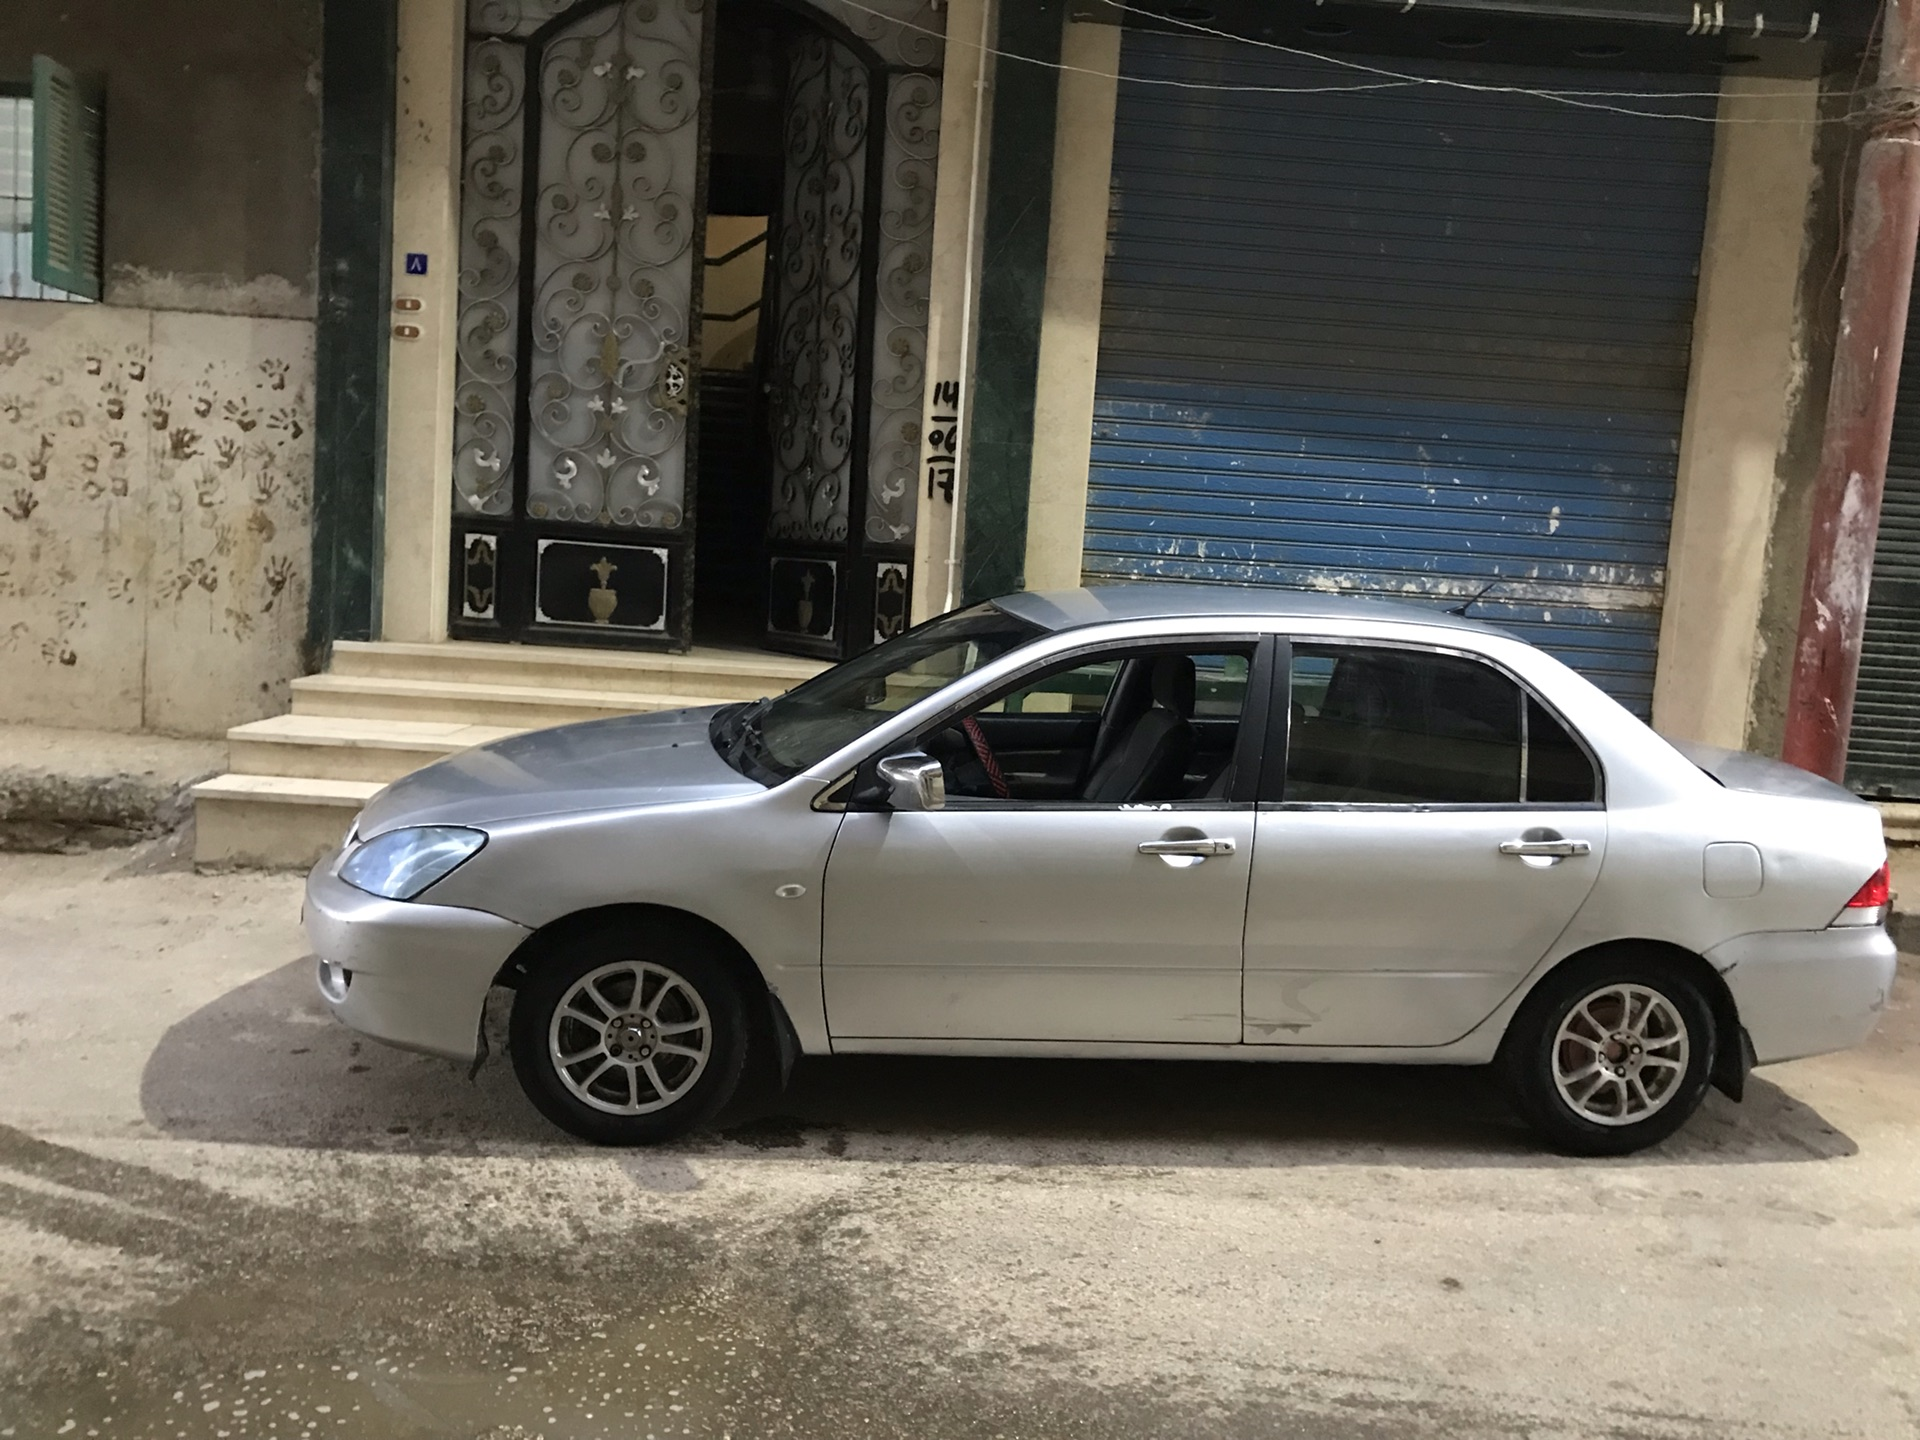 I want to sell my Neatly 2017 BMW X6 M AWD car for just $25000 USD, is barely used and Bought new, Still very clean, inside and outside, full options with perfe-  لانسر بومه 2007 لا تنسَ...